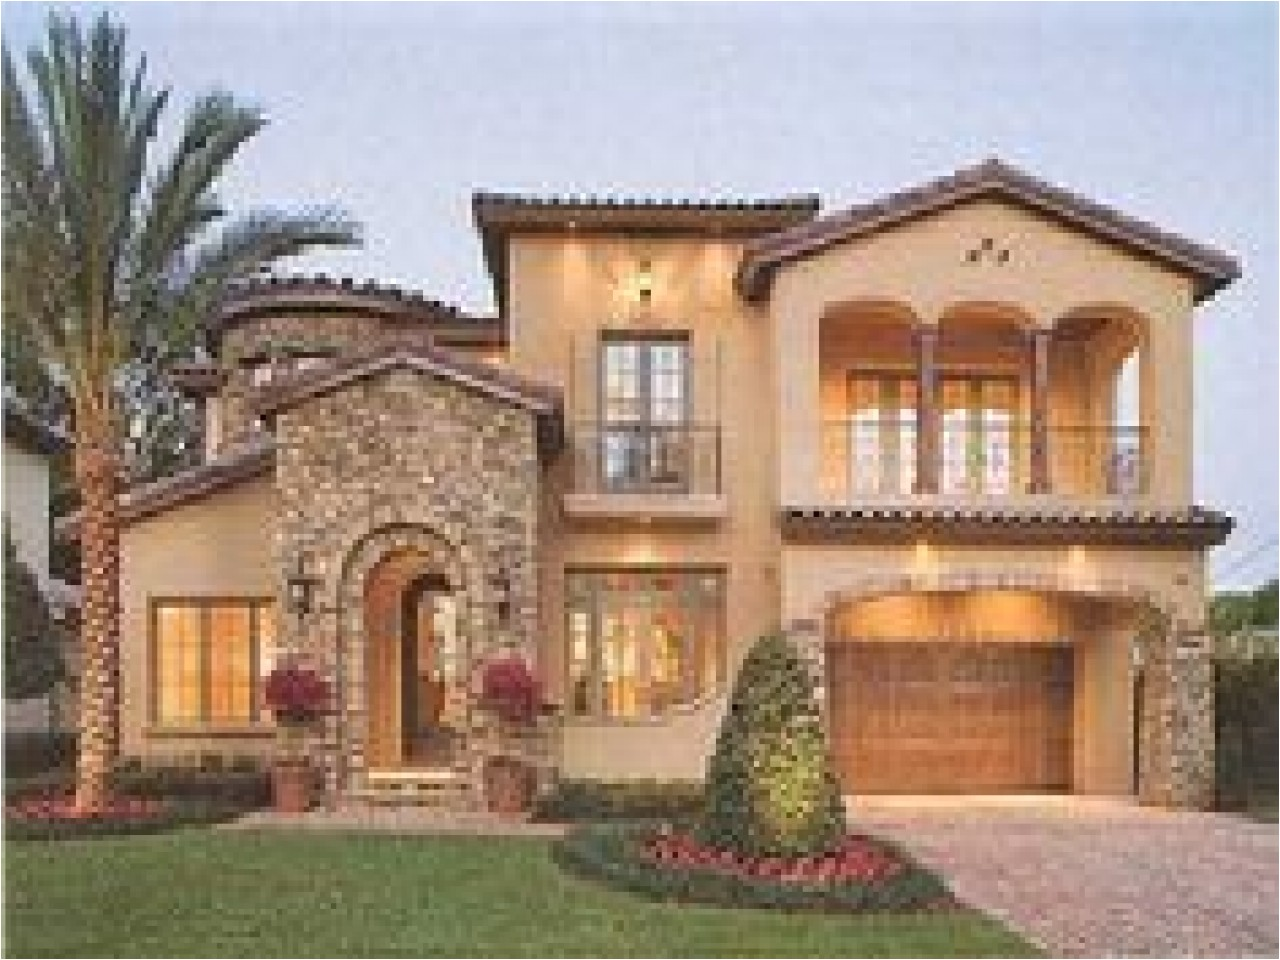 0a9ebe129ed4f486 house styles names home style tuscan house plans